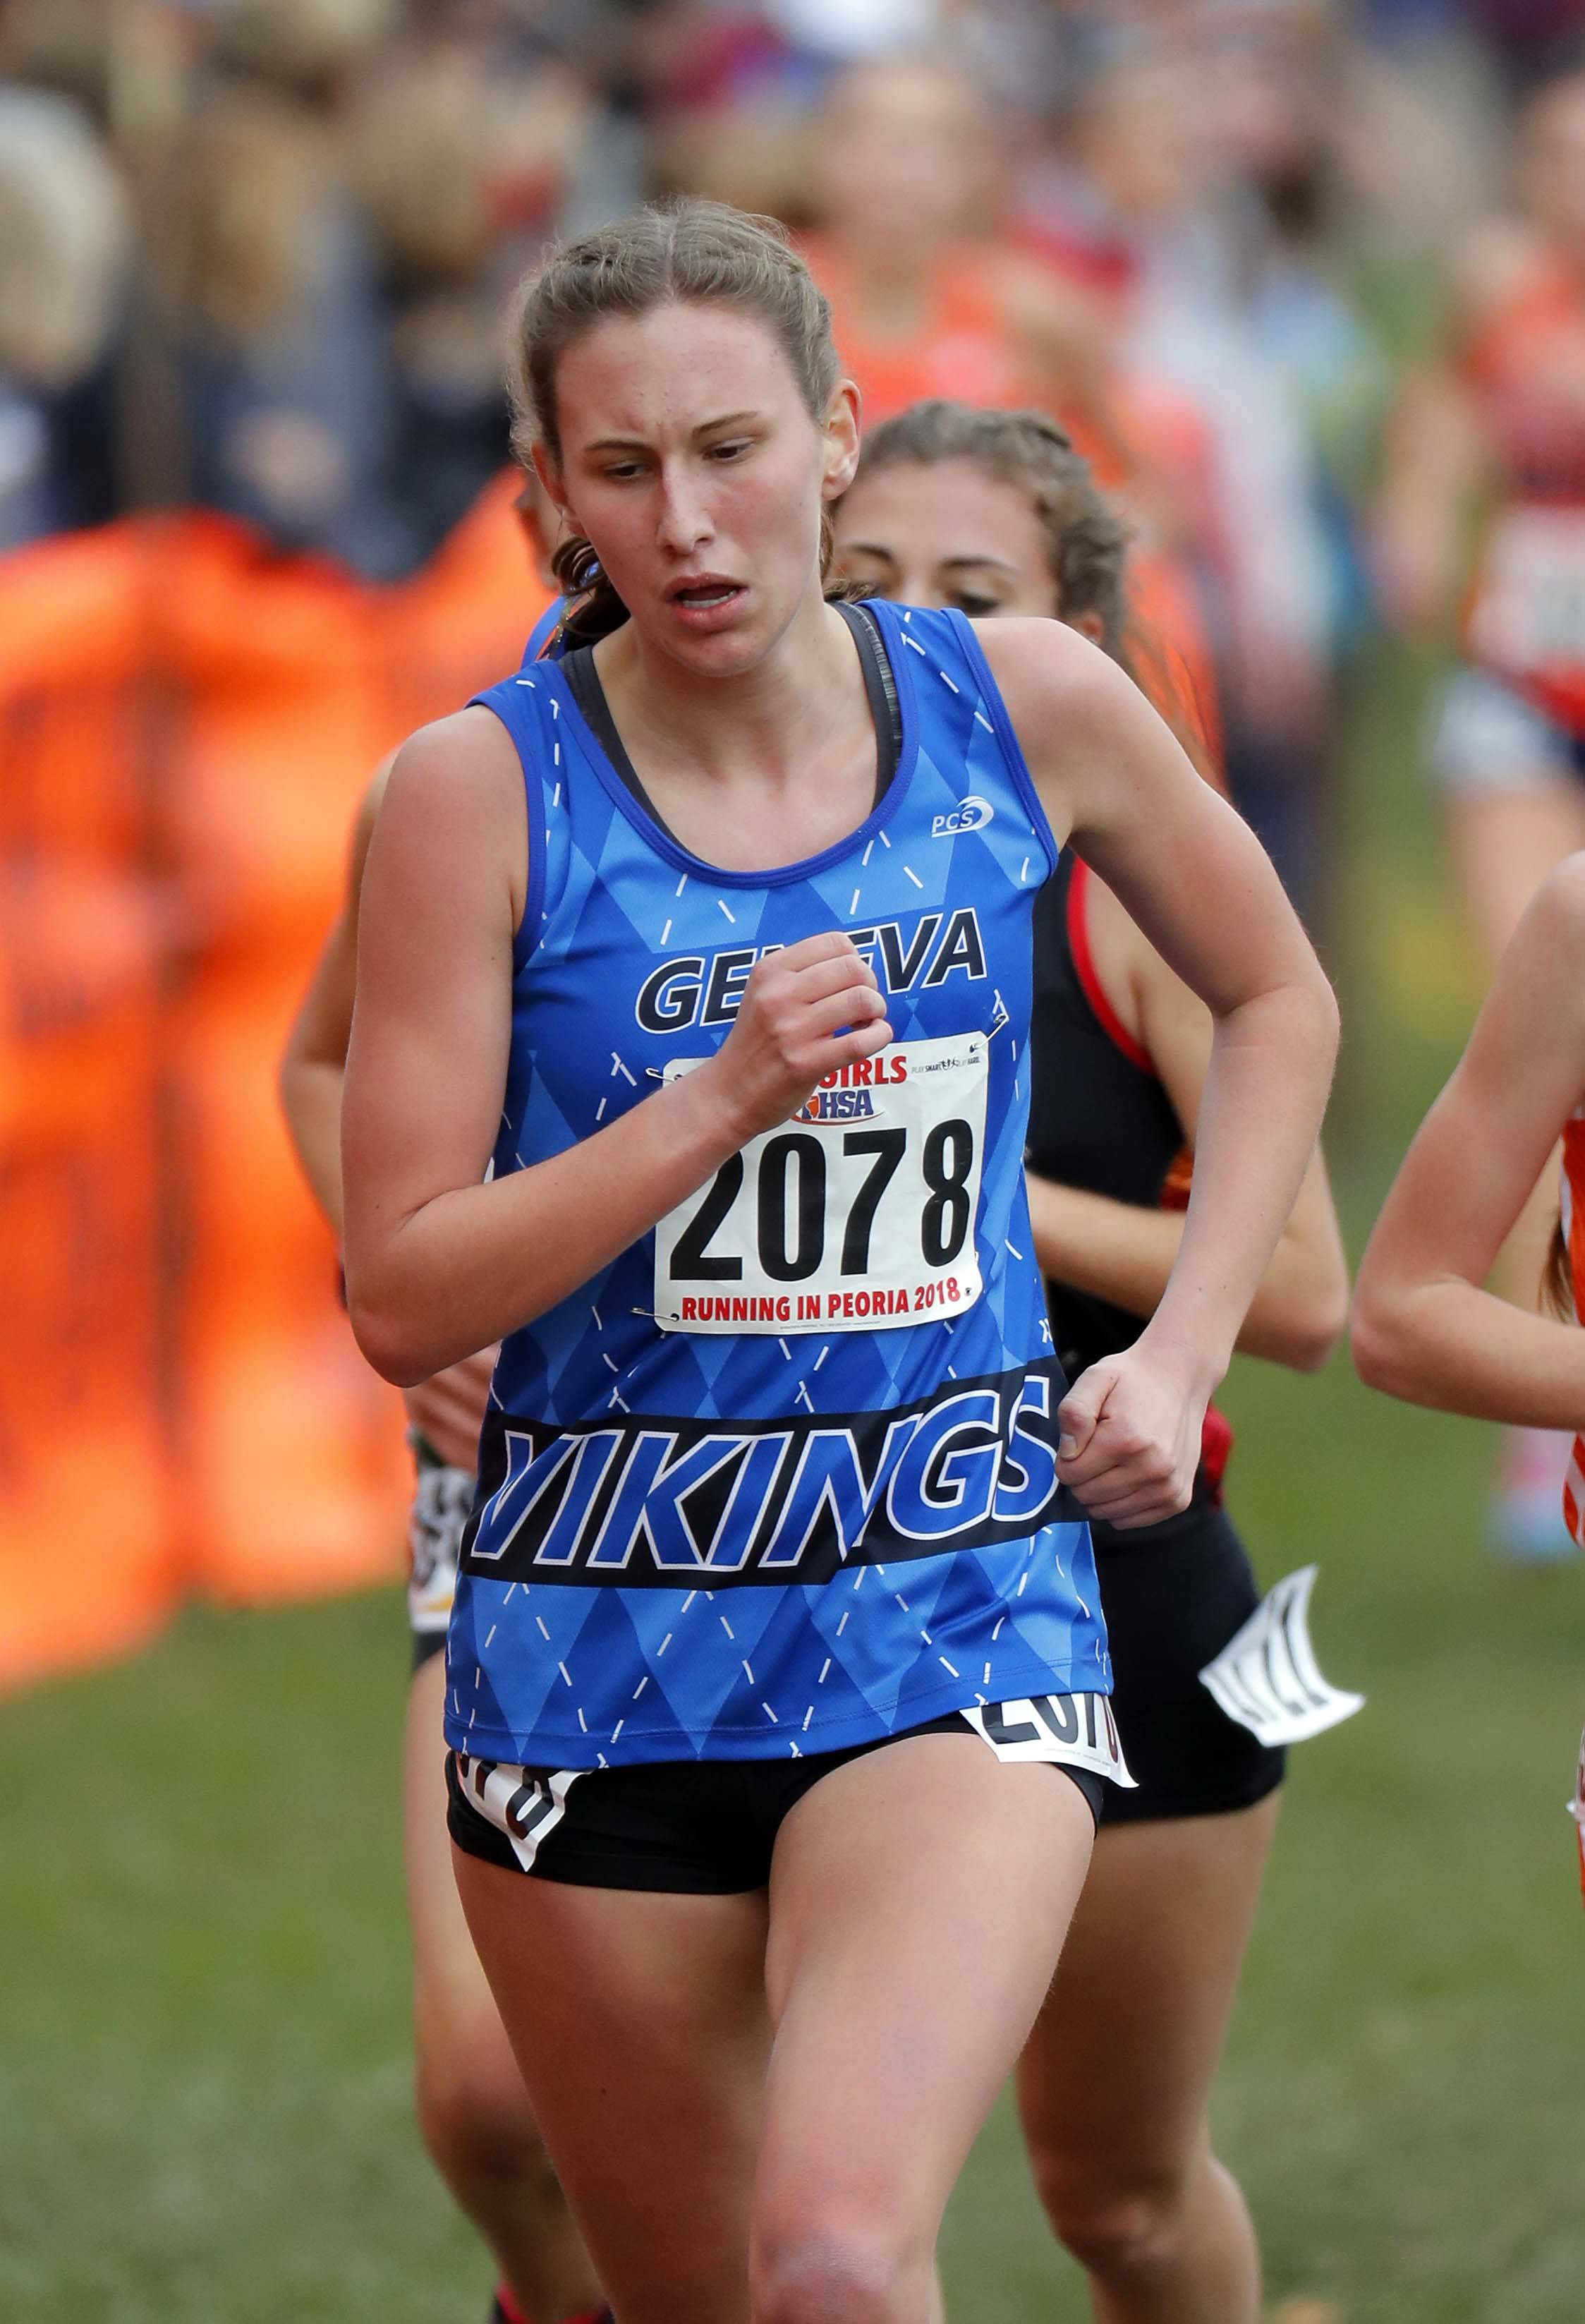 Geneva senior Sophia McDonnell finished 20th in the Class 3A race to earn all-state honors.